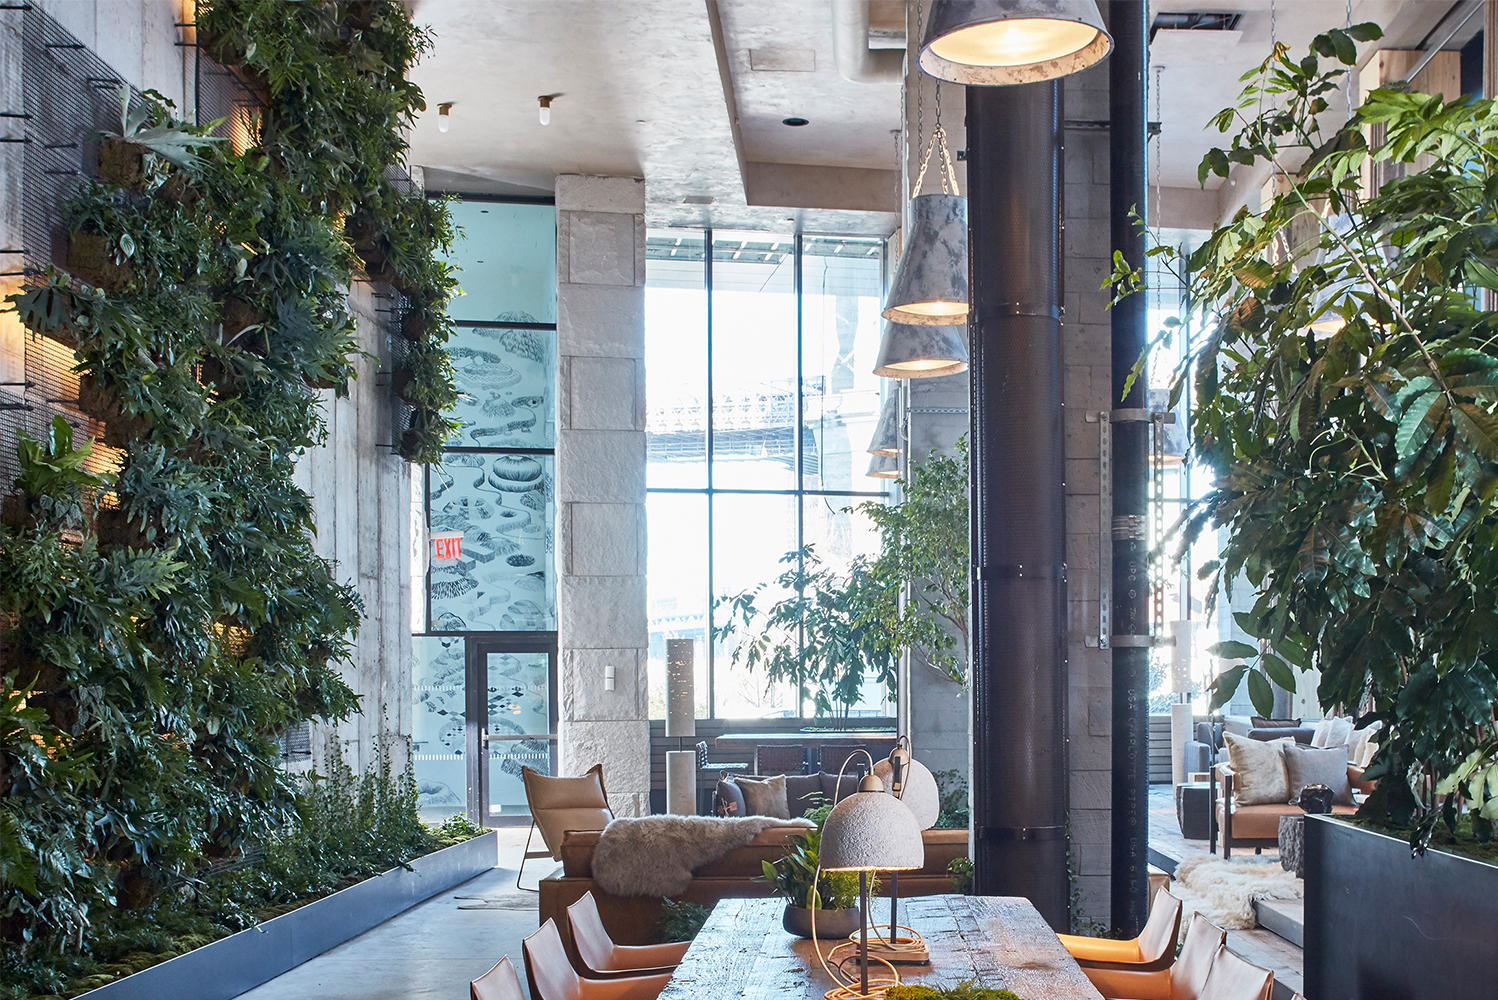 New York City-based landscape design firm Harrison Green brought the outdoors inside in the newly opened 1 Hotel Brooklyn Bridge.